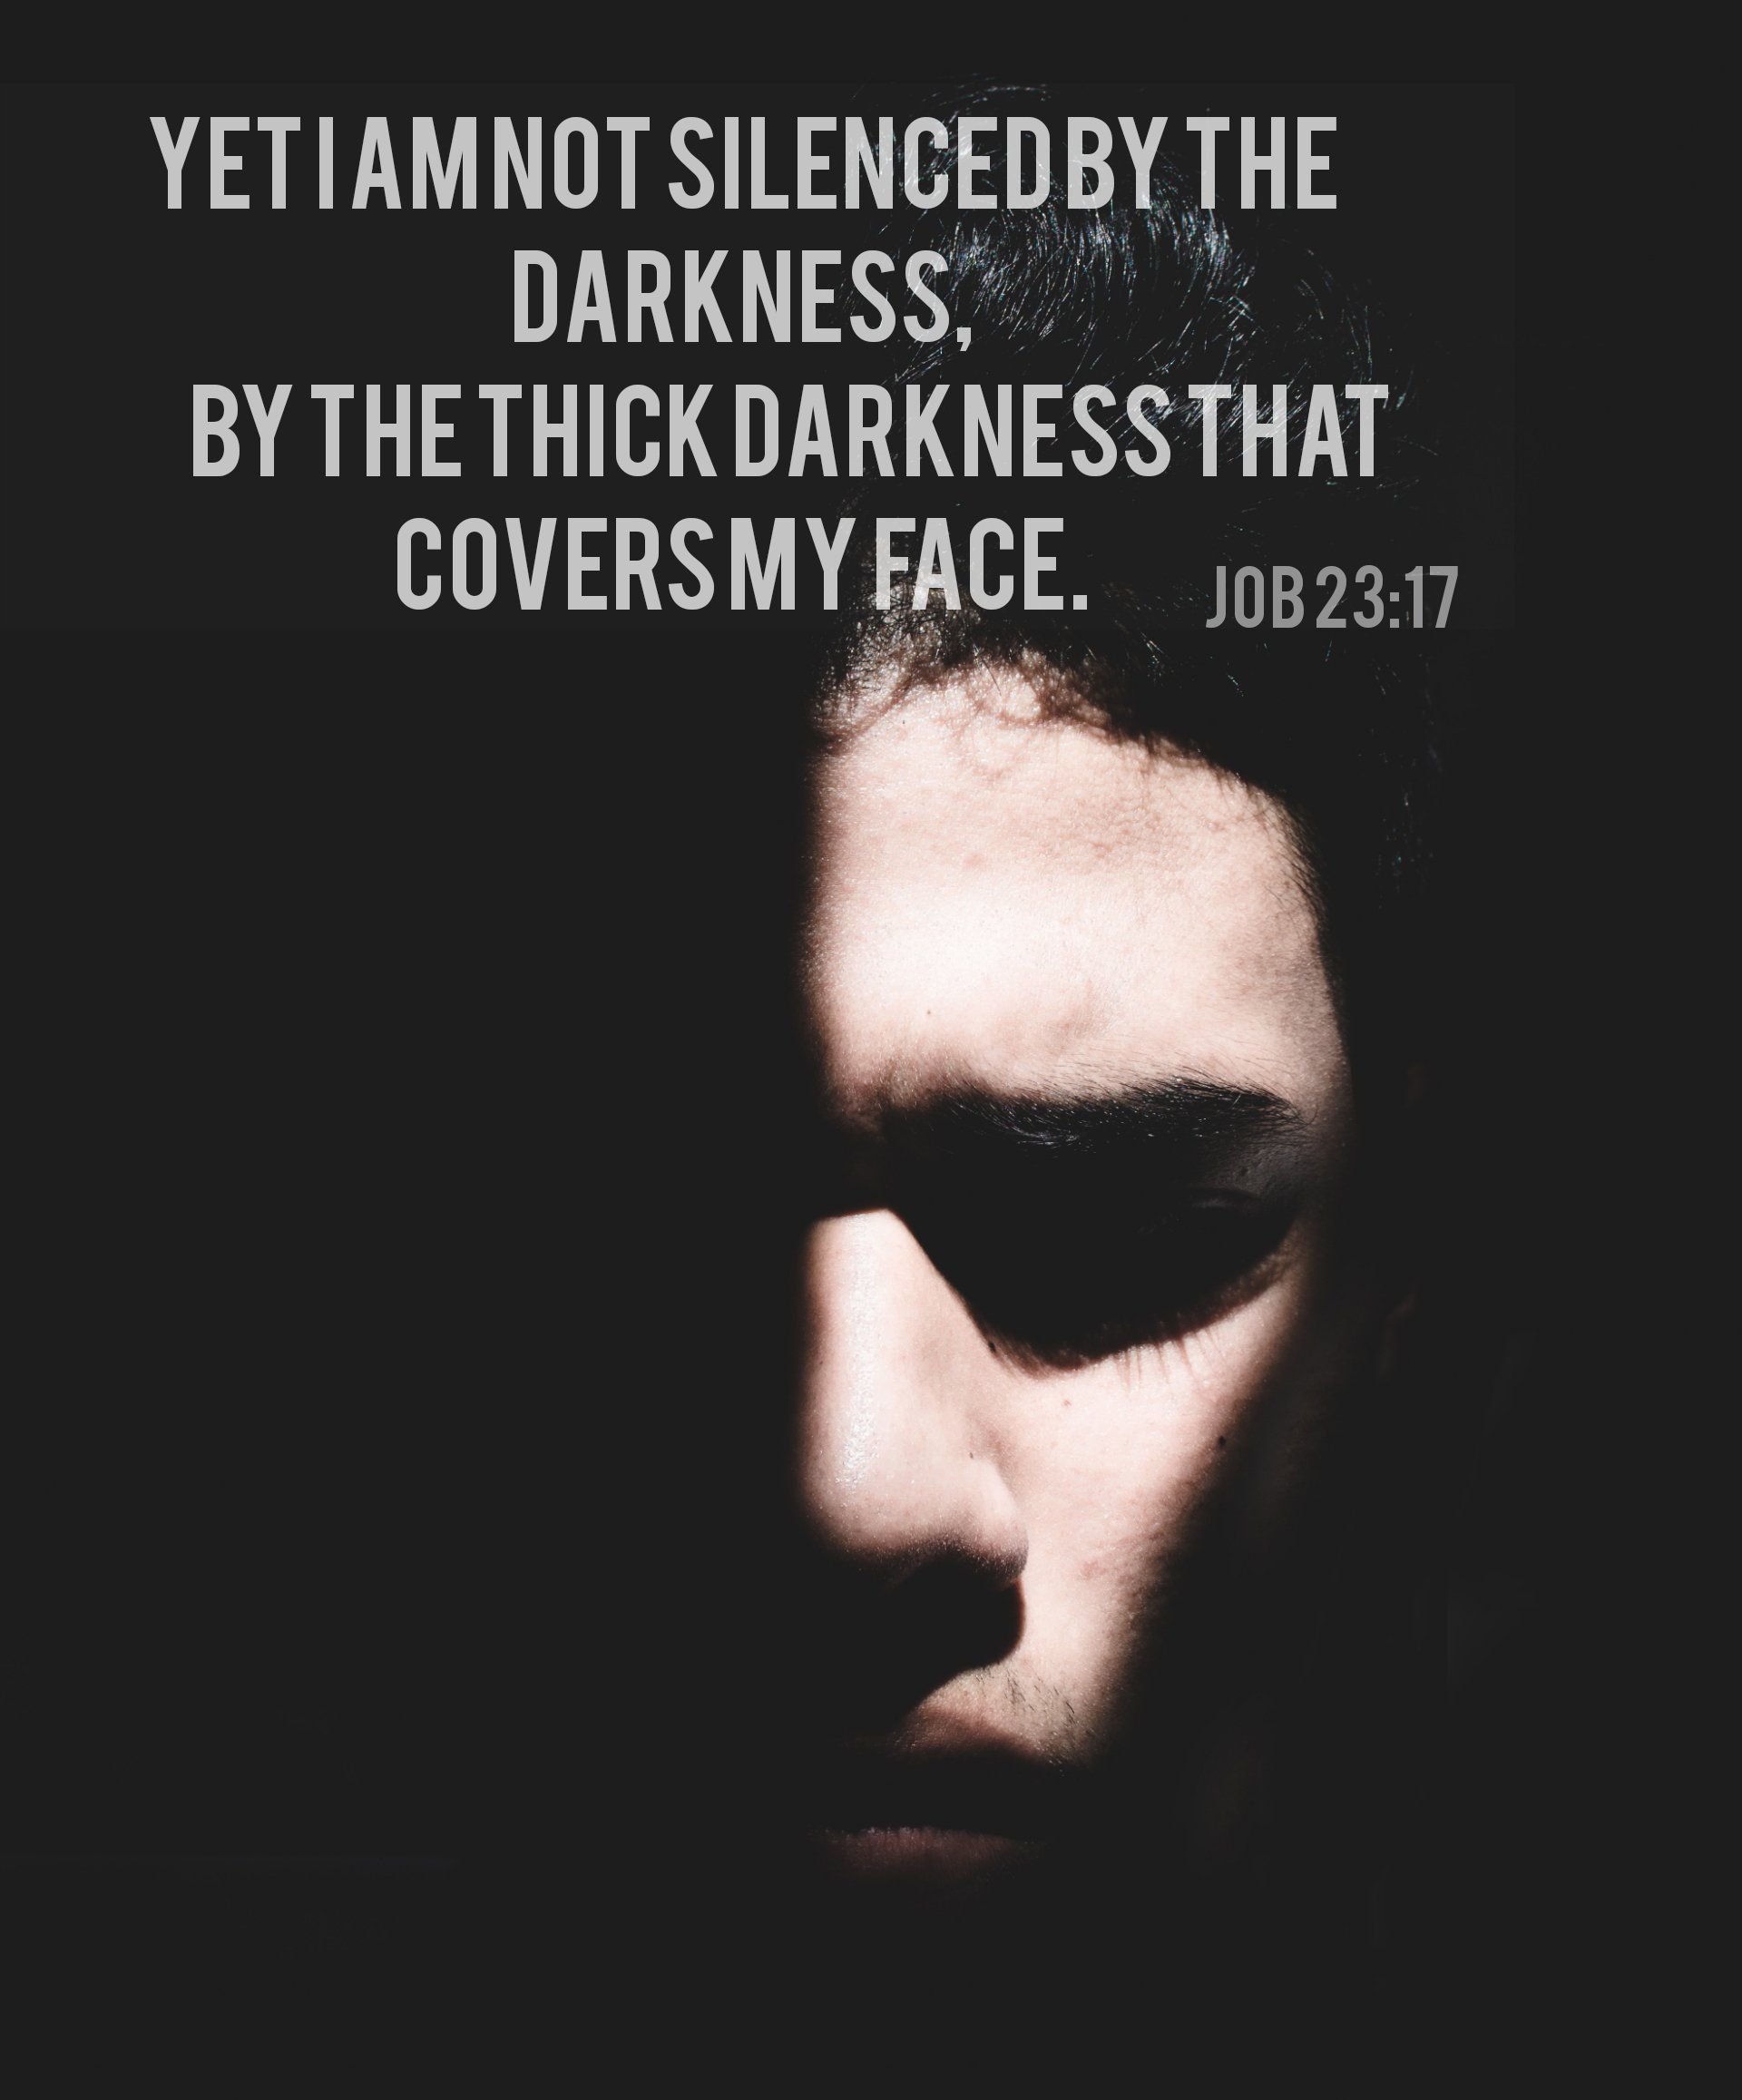 a face covered by dark shadow